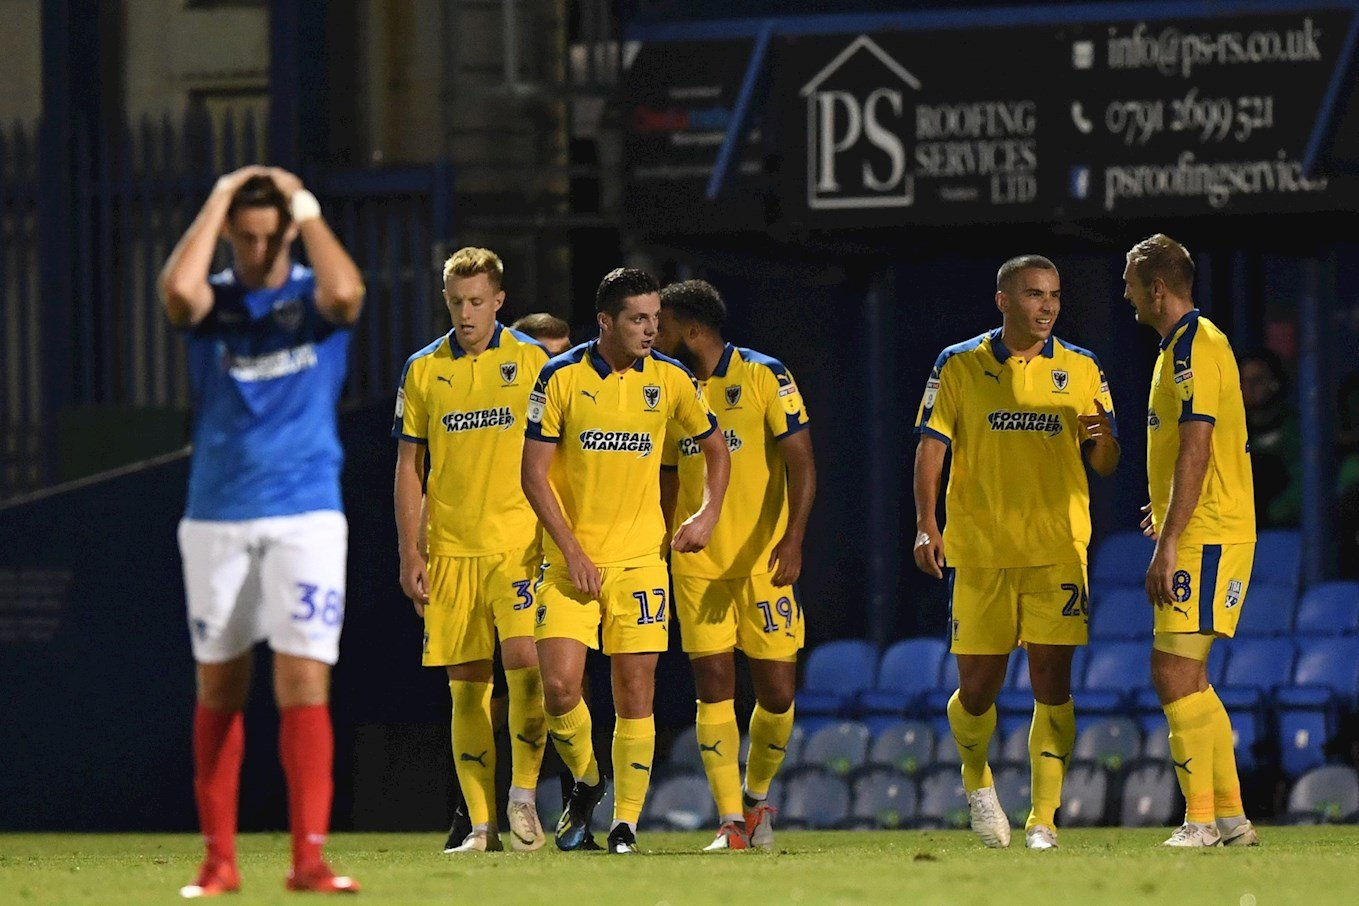 Dons see off Pompey